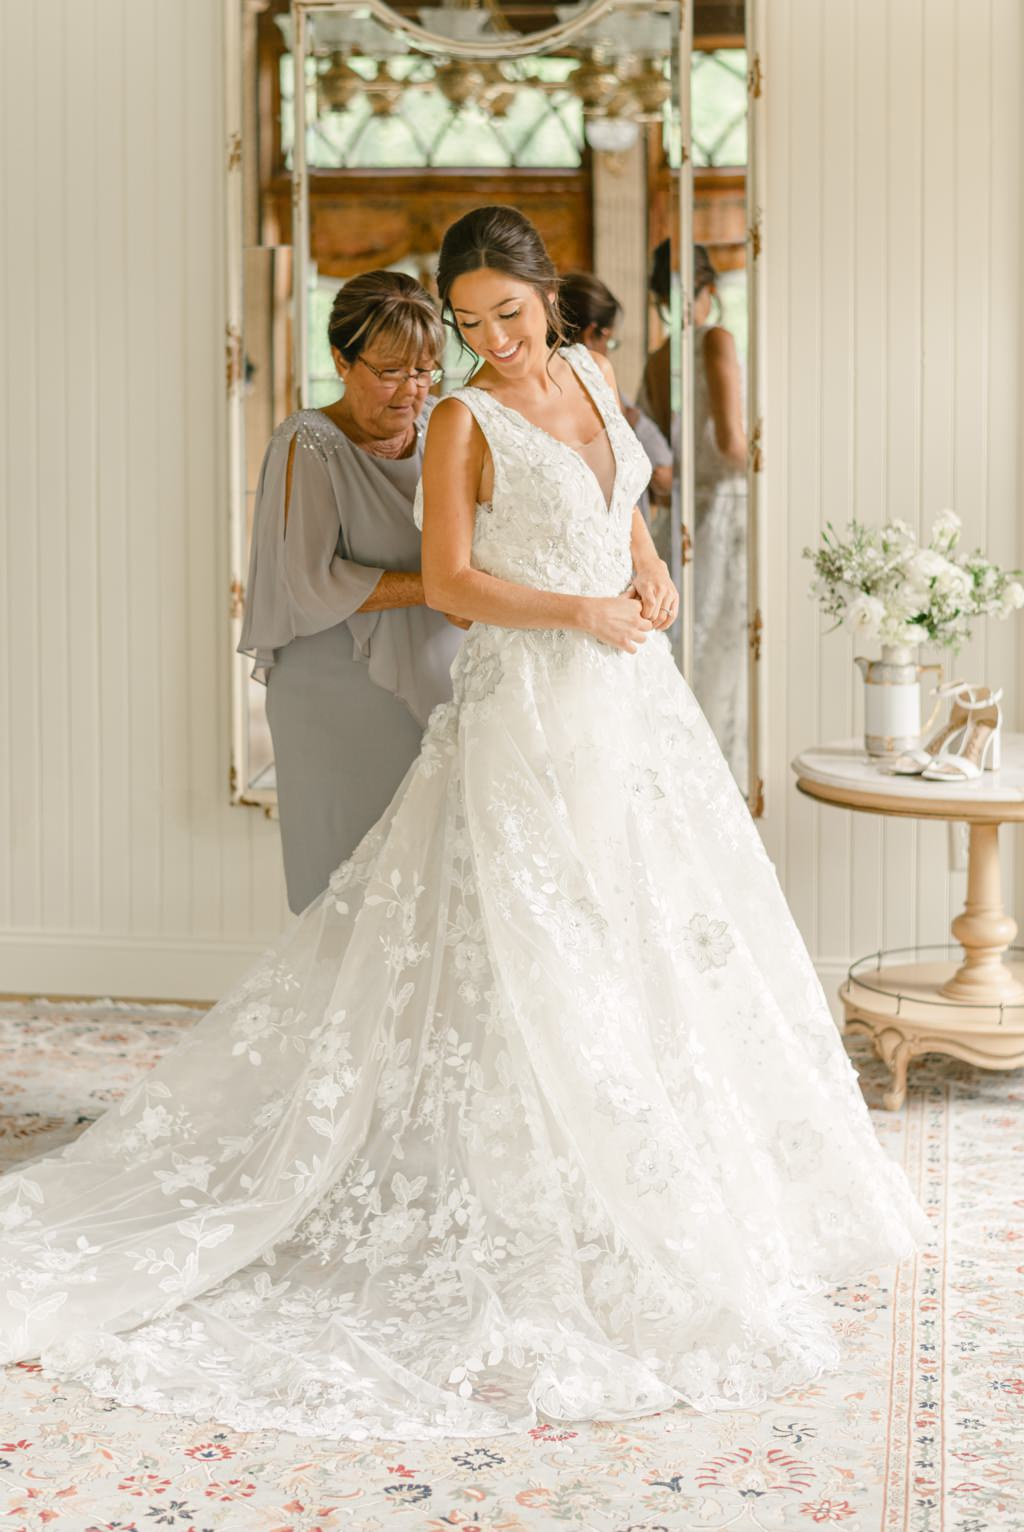 A mom helping the bride put on her wedding dress at Moonstone Manor.